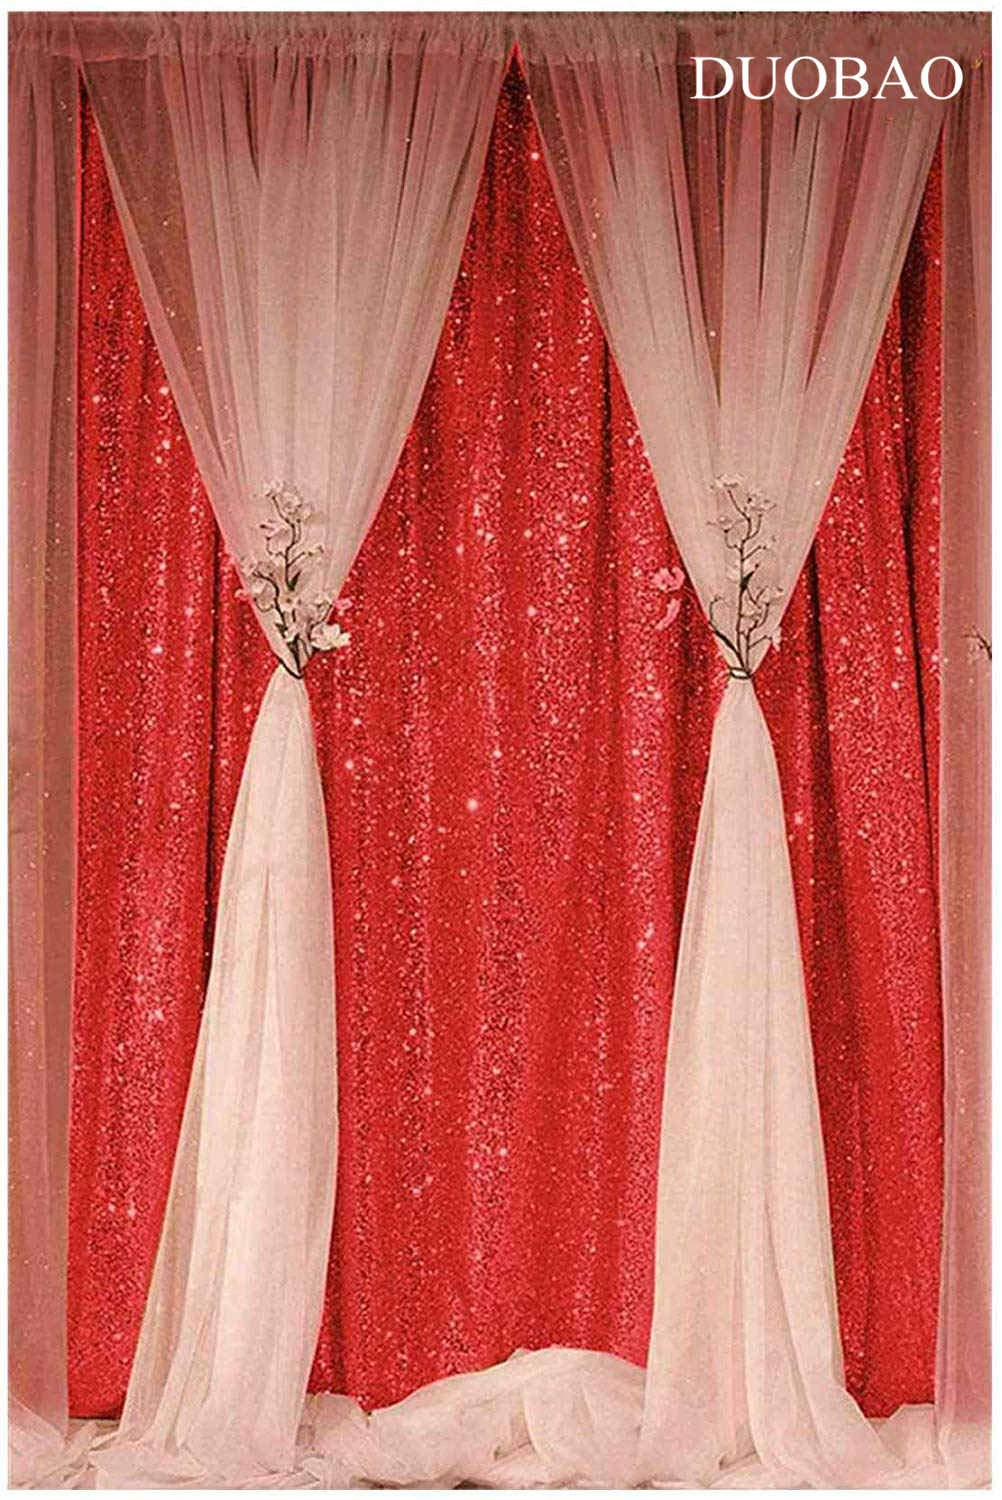 DUOBAO Sequin Backdrop Curtain 4FTx6FT Red Glitter Background Red Sequin Photo Backdrop Prom Party Decor~0613 by DUOBAO